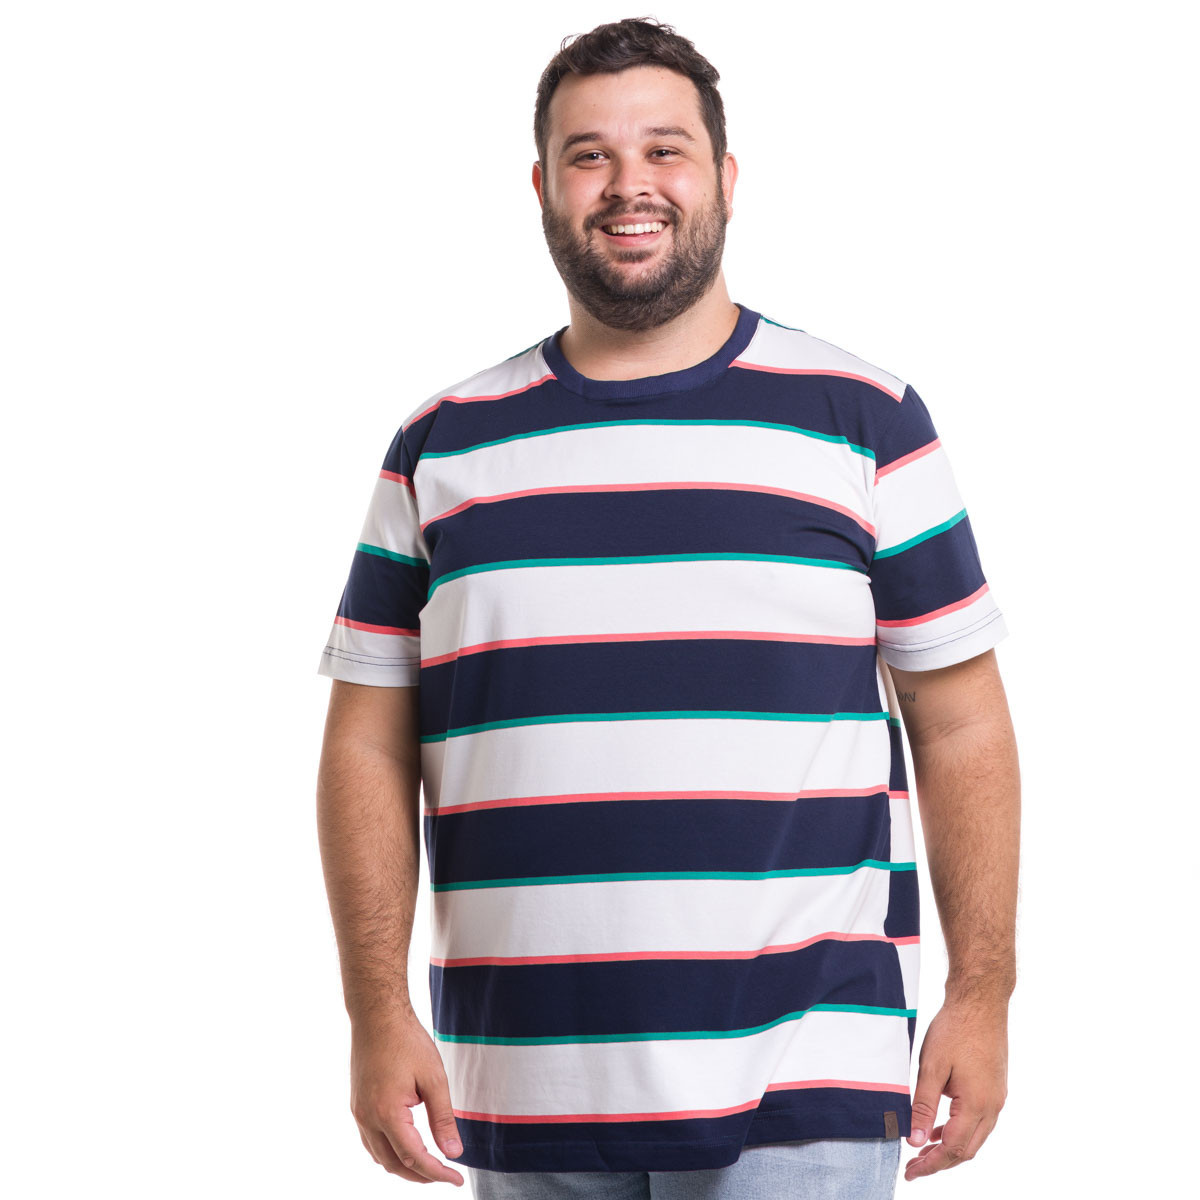 Camiseta Plus Size Masculina Tripple Color